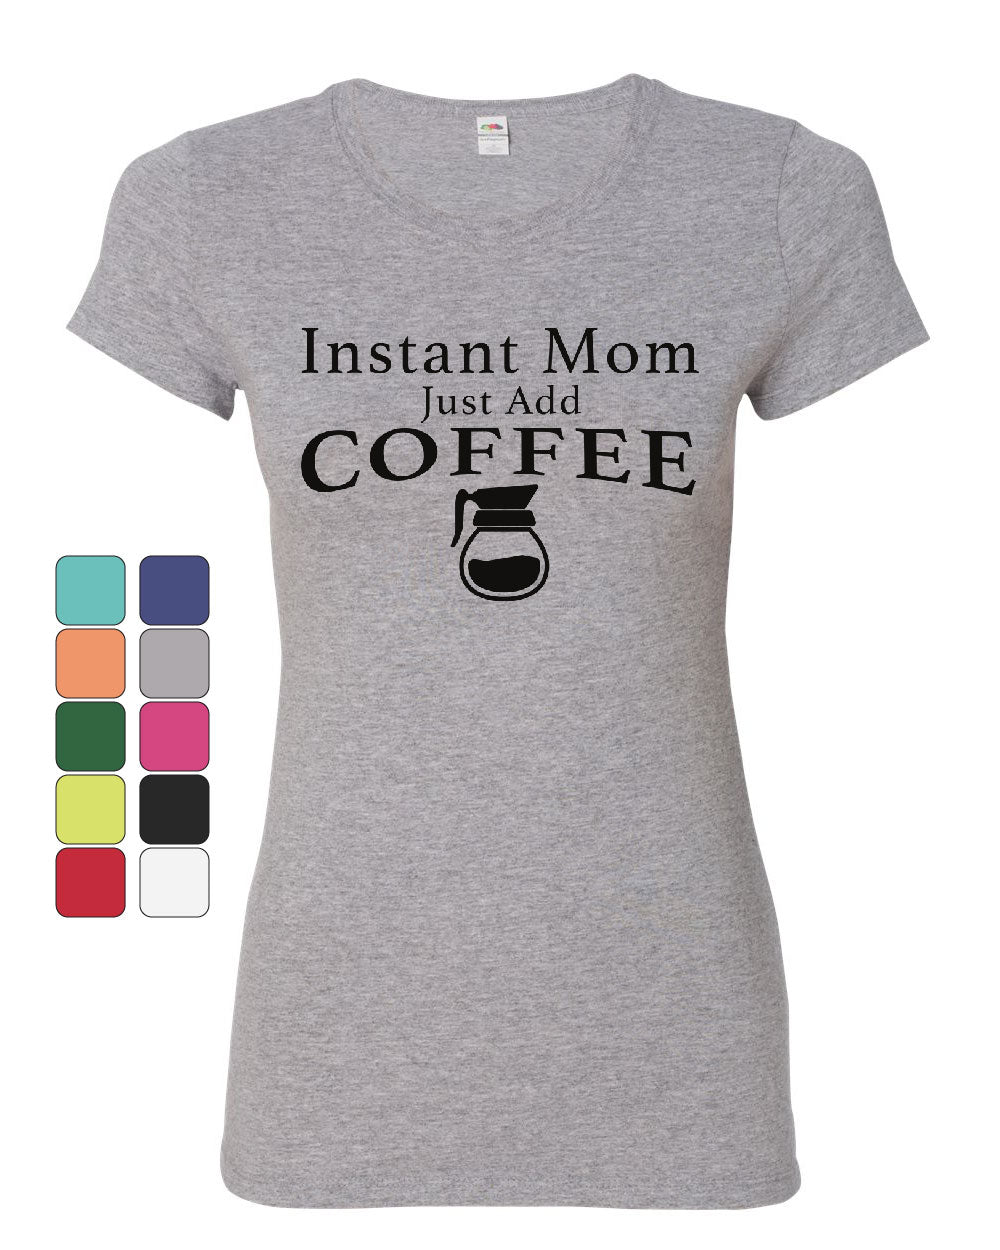 Instant Mom Women/'s T-Shirt Coffee Waking Up Parenting Funny Cute Mommy Shirt